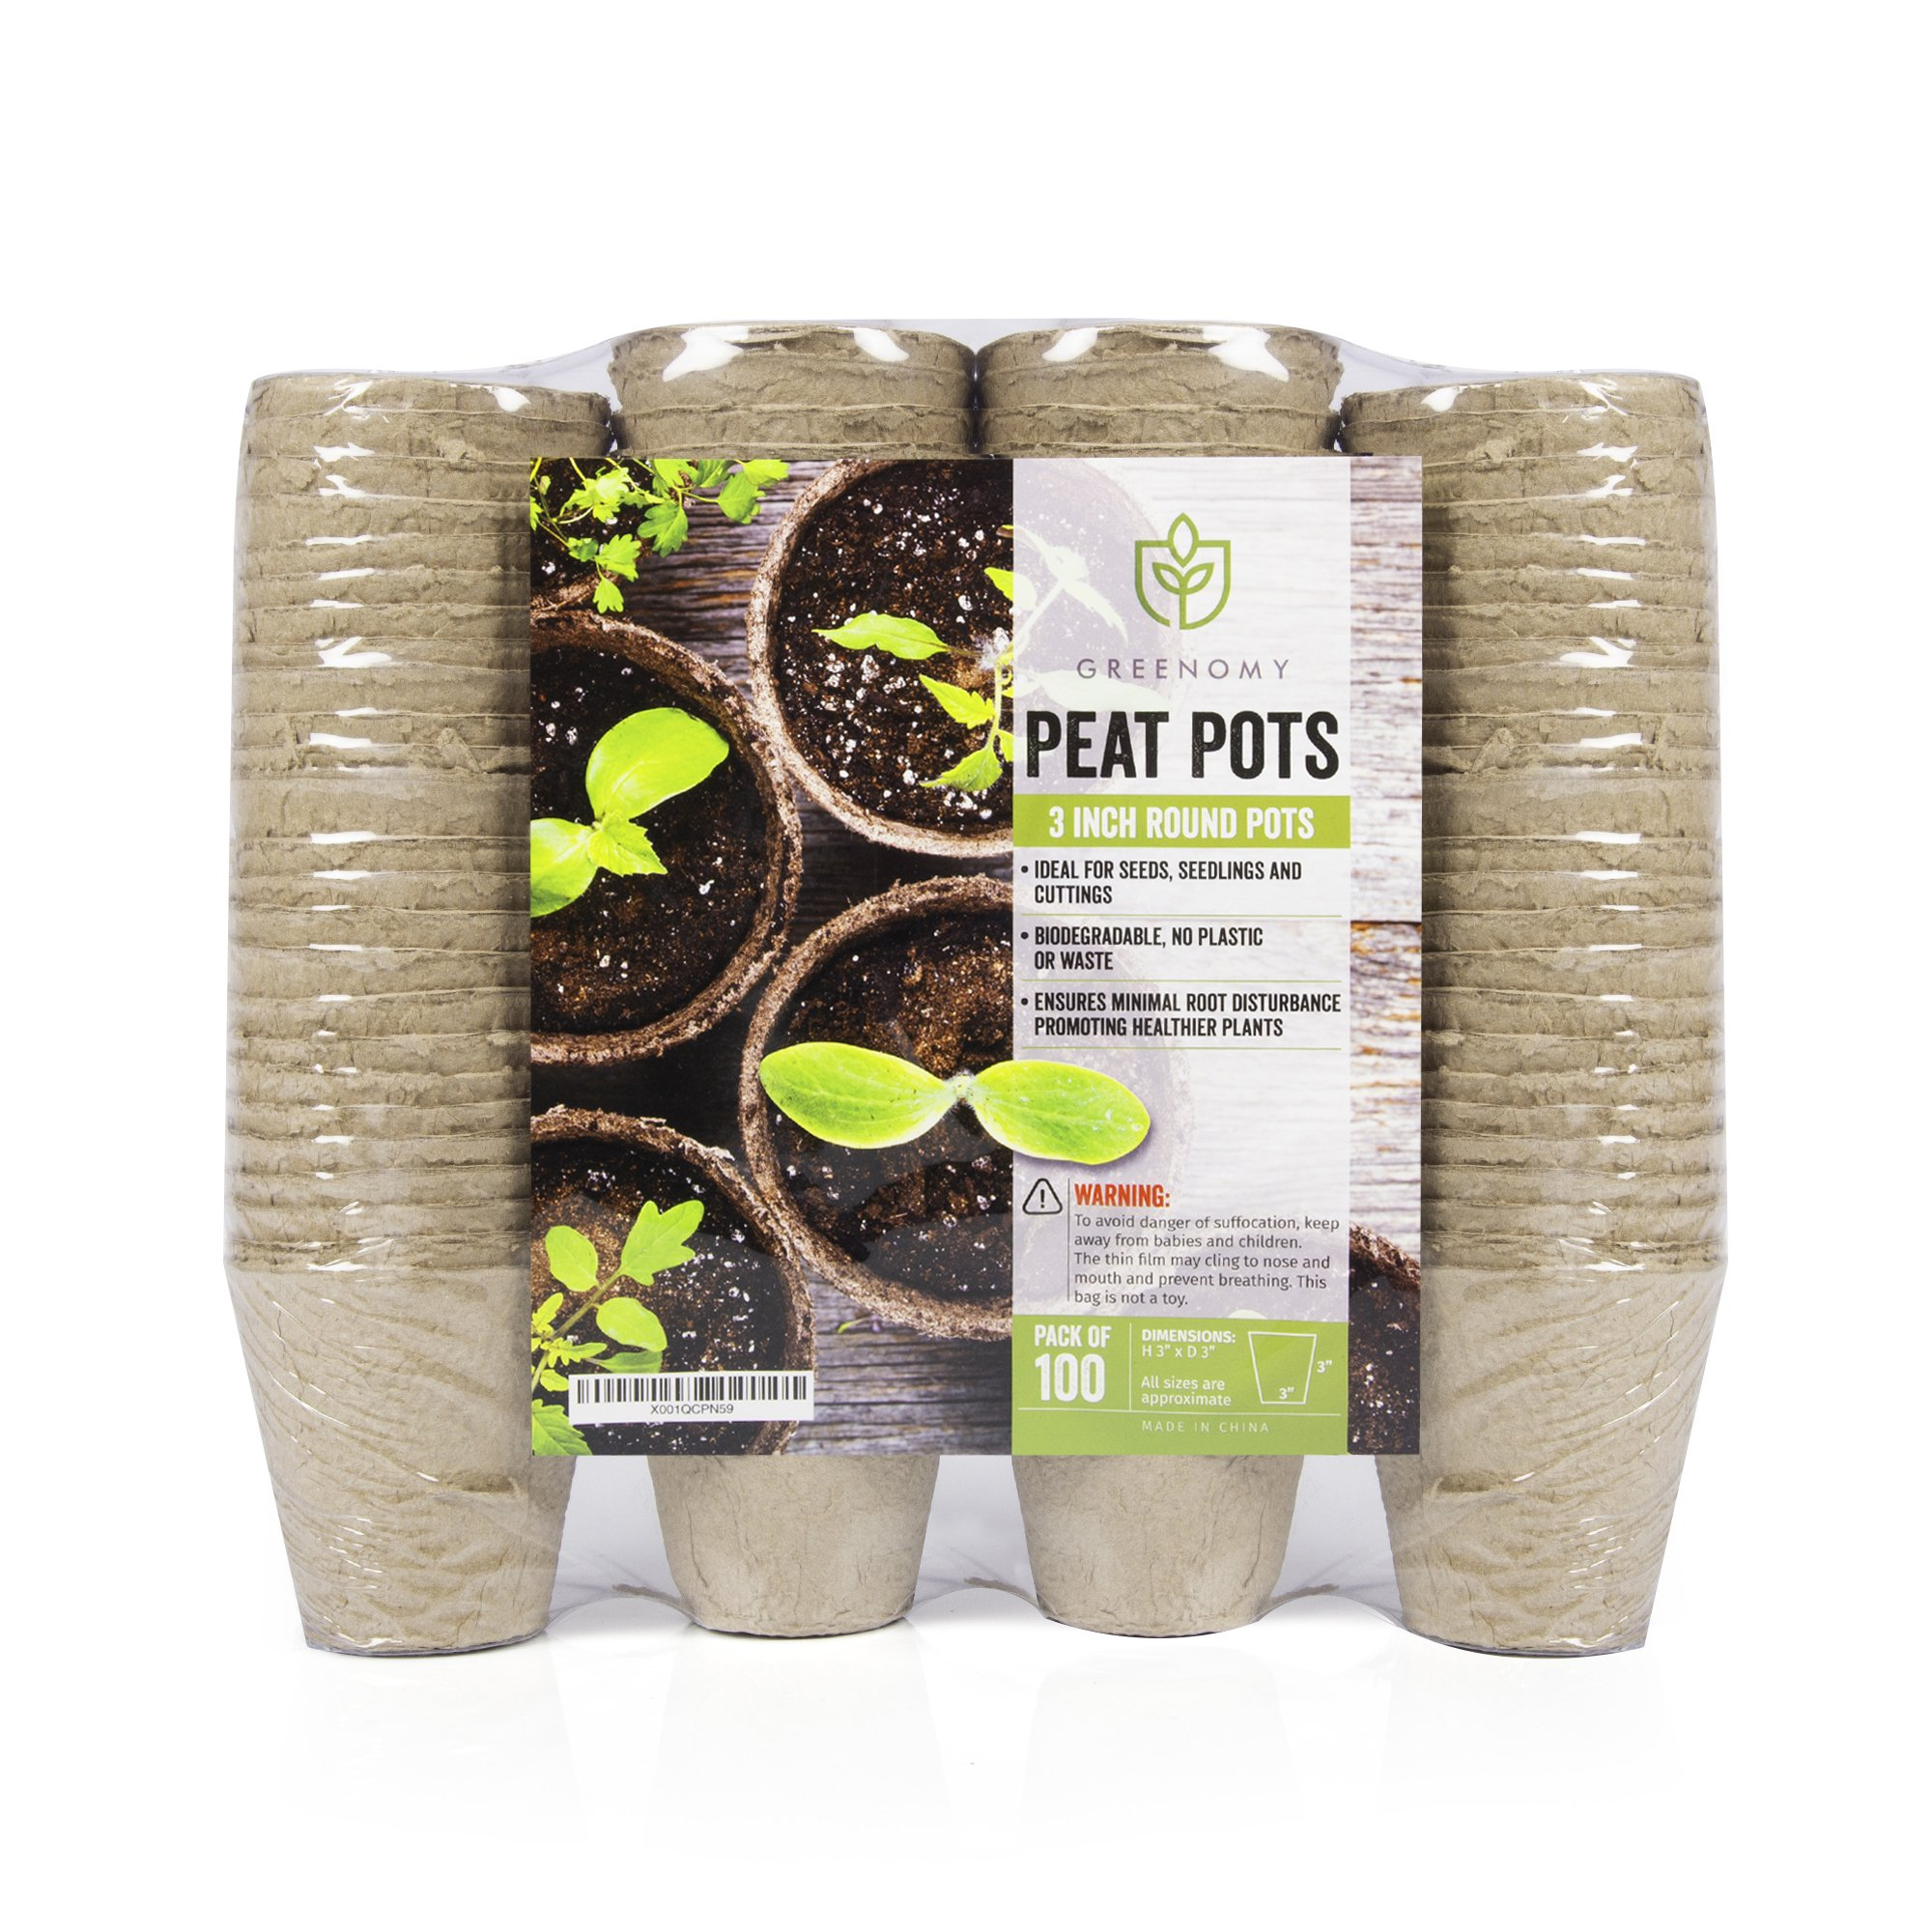 Greenomy 3'' Peat Pots Pack of 100|Seed Starter Kit| for Seedlings, Flowers, Vegetables|Eco-Friendly & 100% Biodegradable by Greenomy